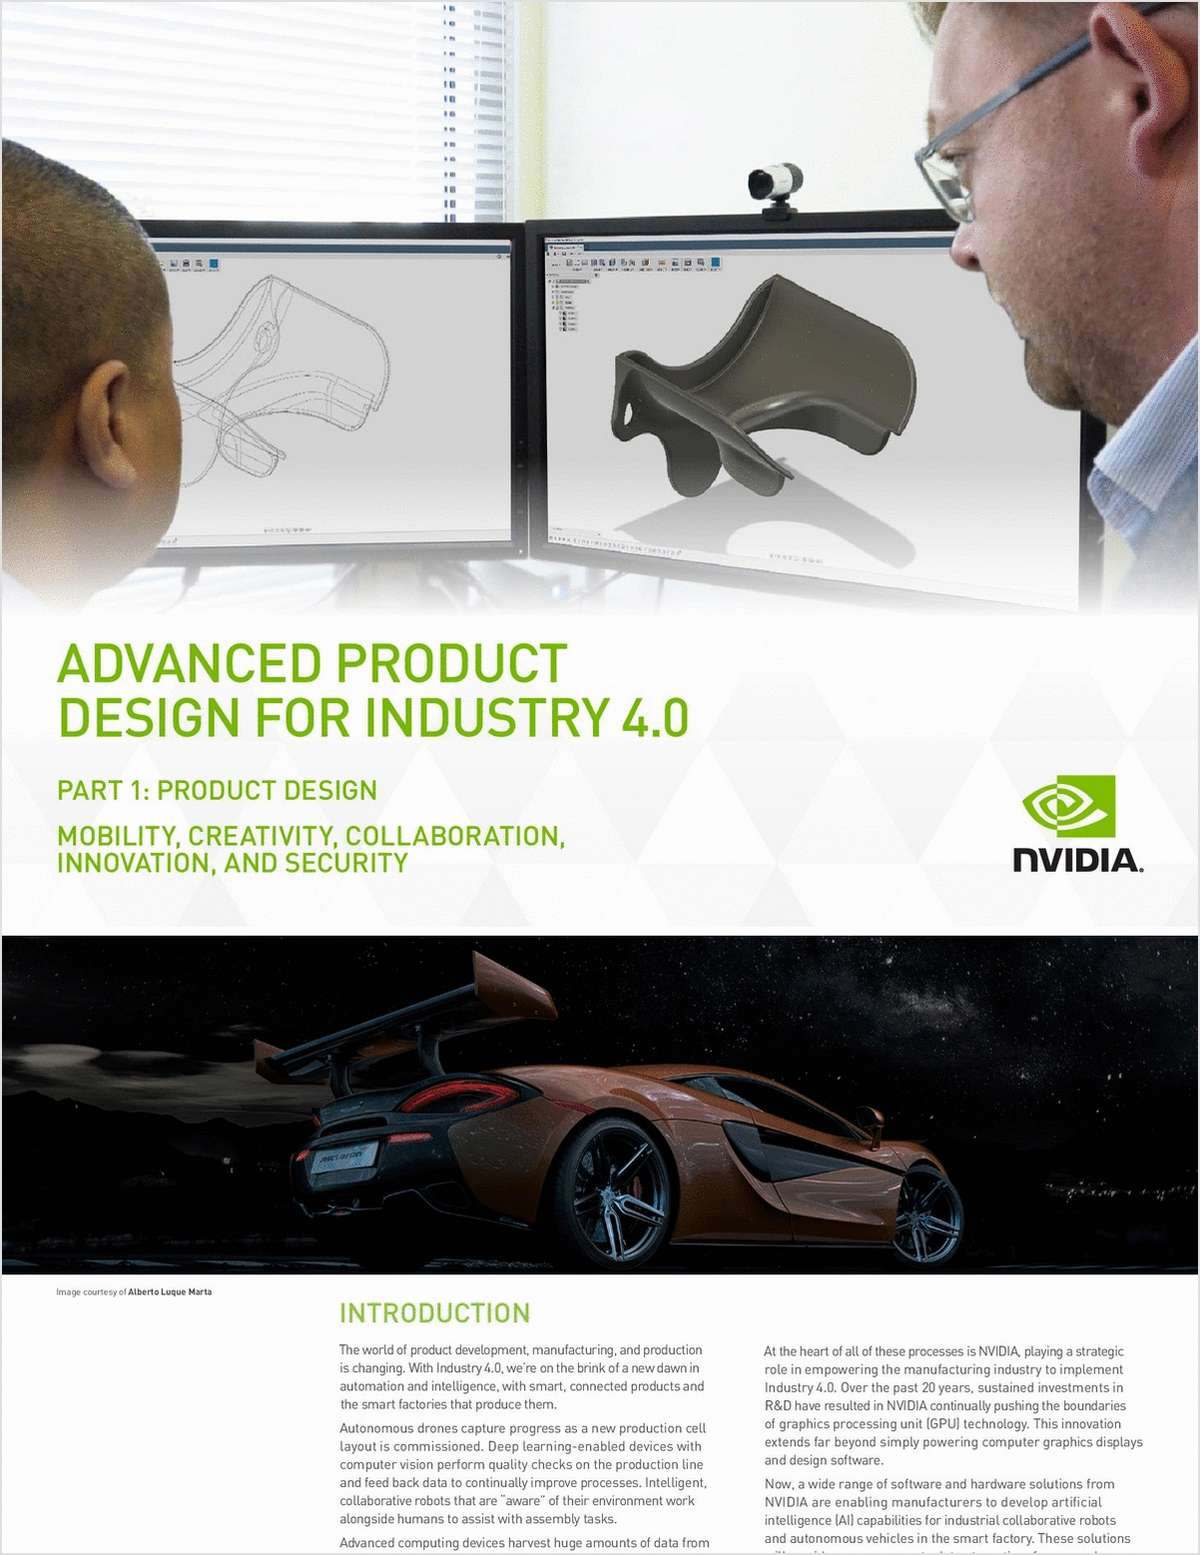 Advanced Product Design for Industry 4.0